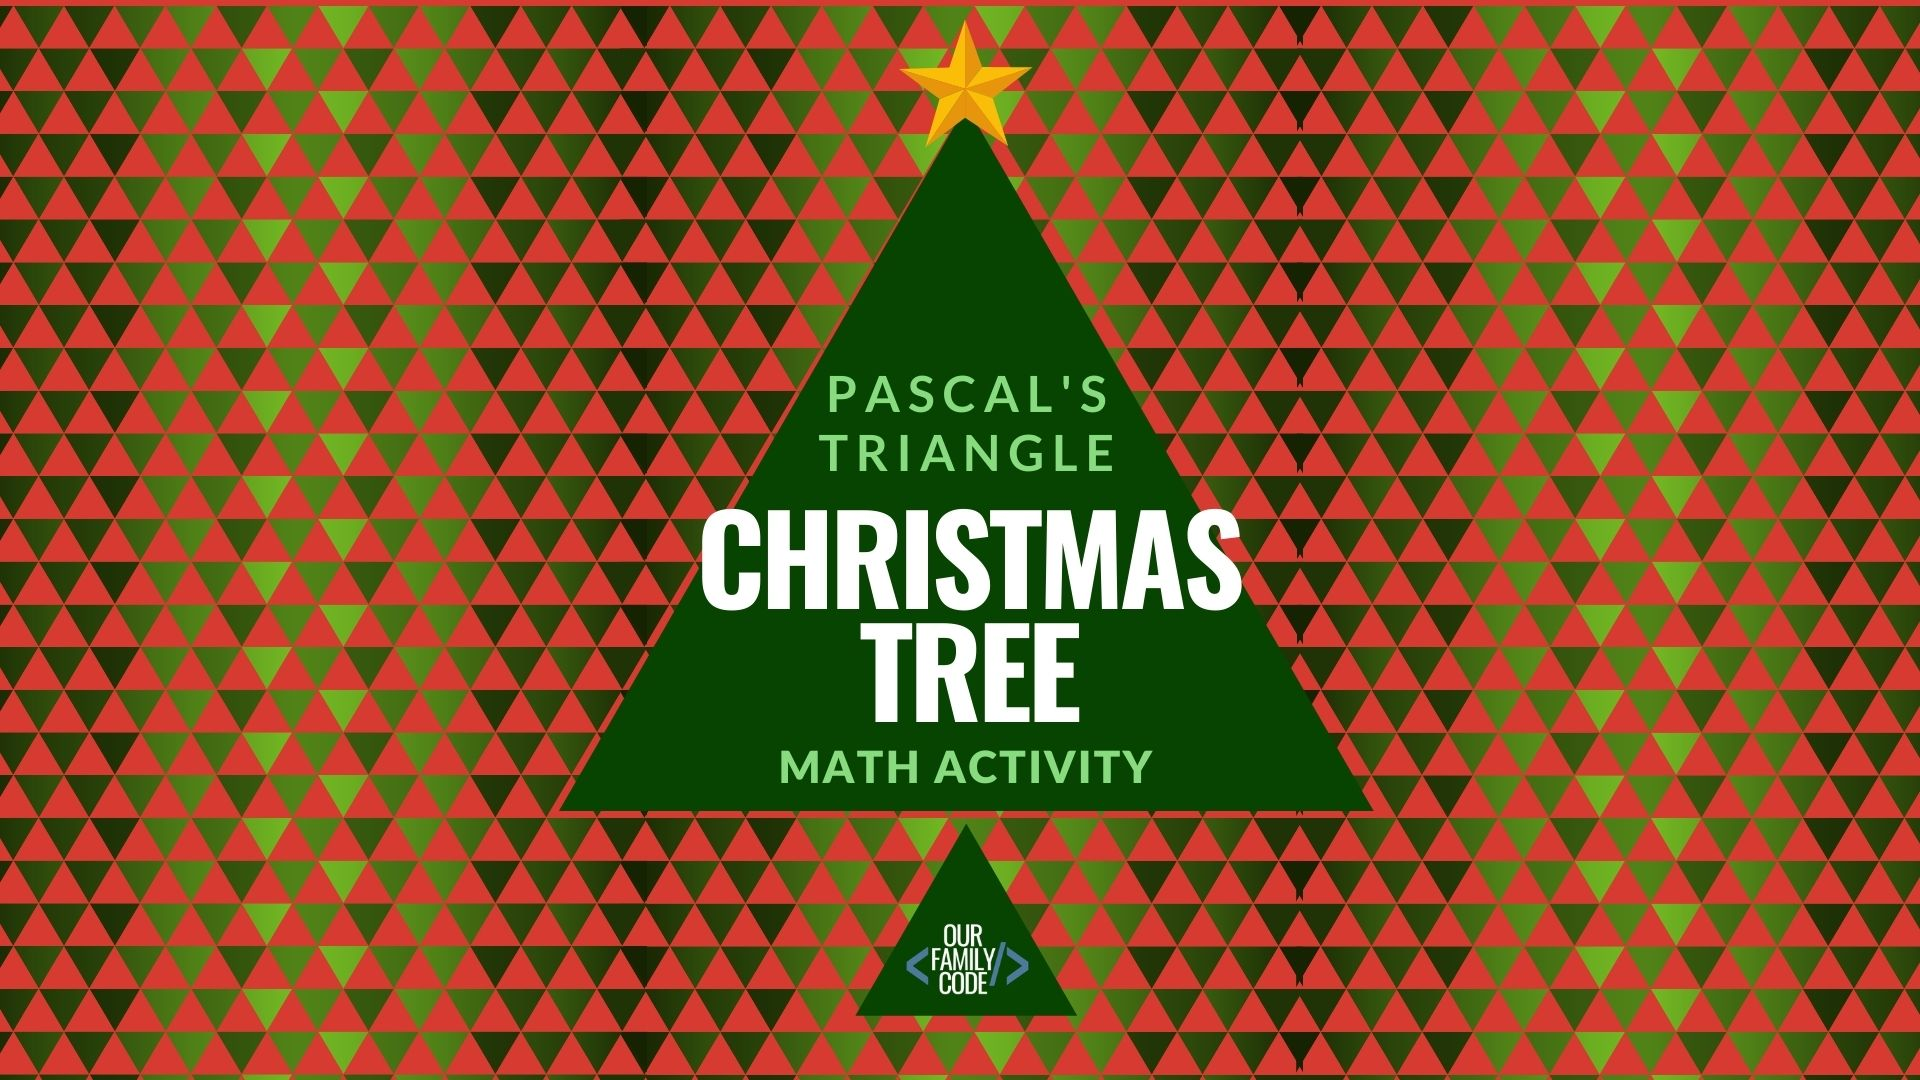 Pascal's Triangle Christmas Tree Patterns Math Activity Fascinating Pascal Triangle Patterns